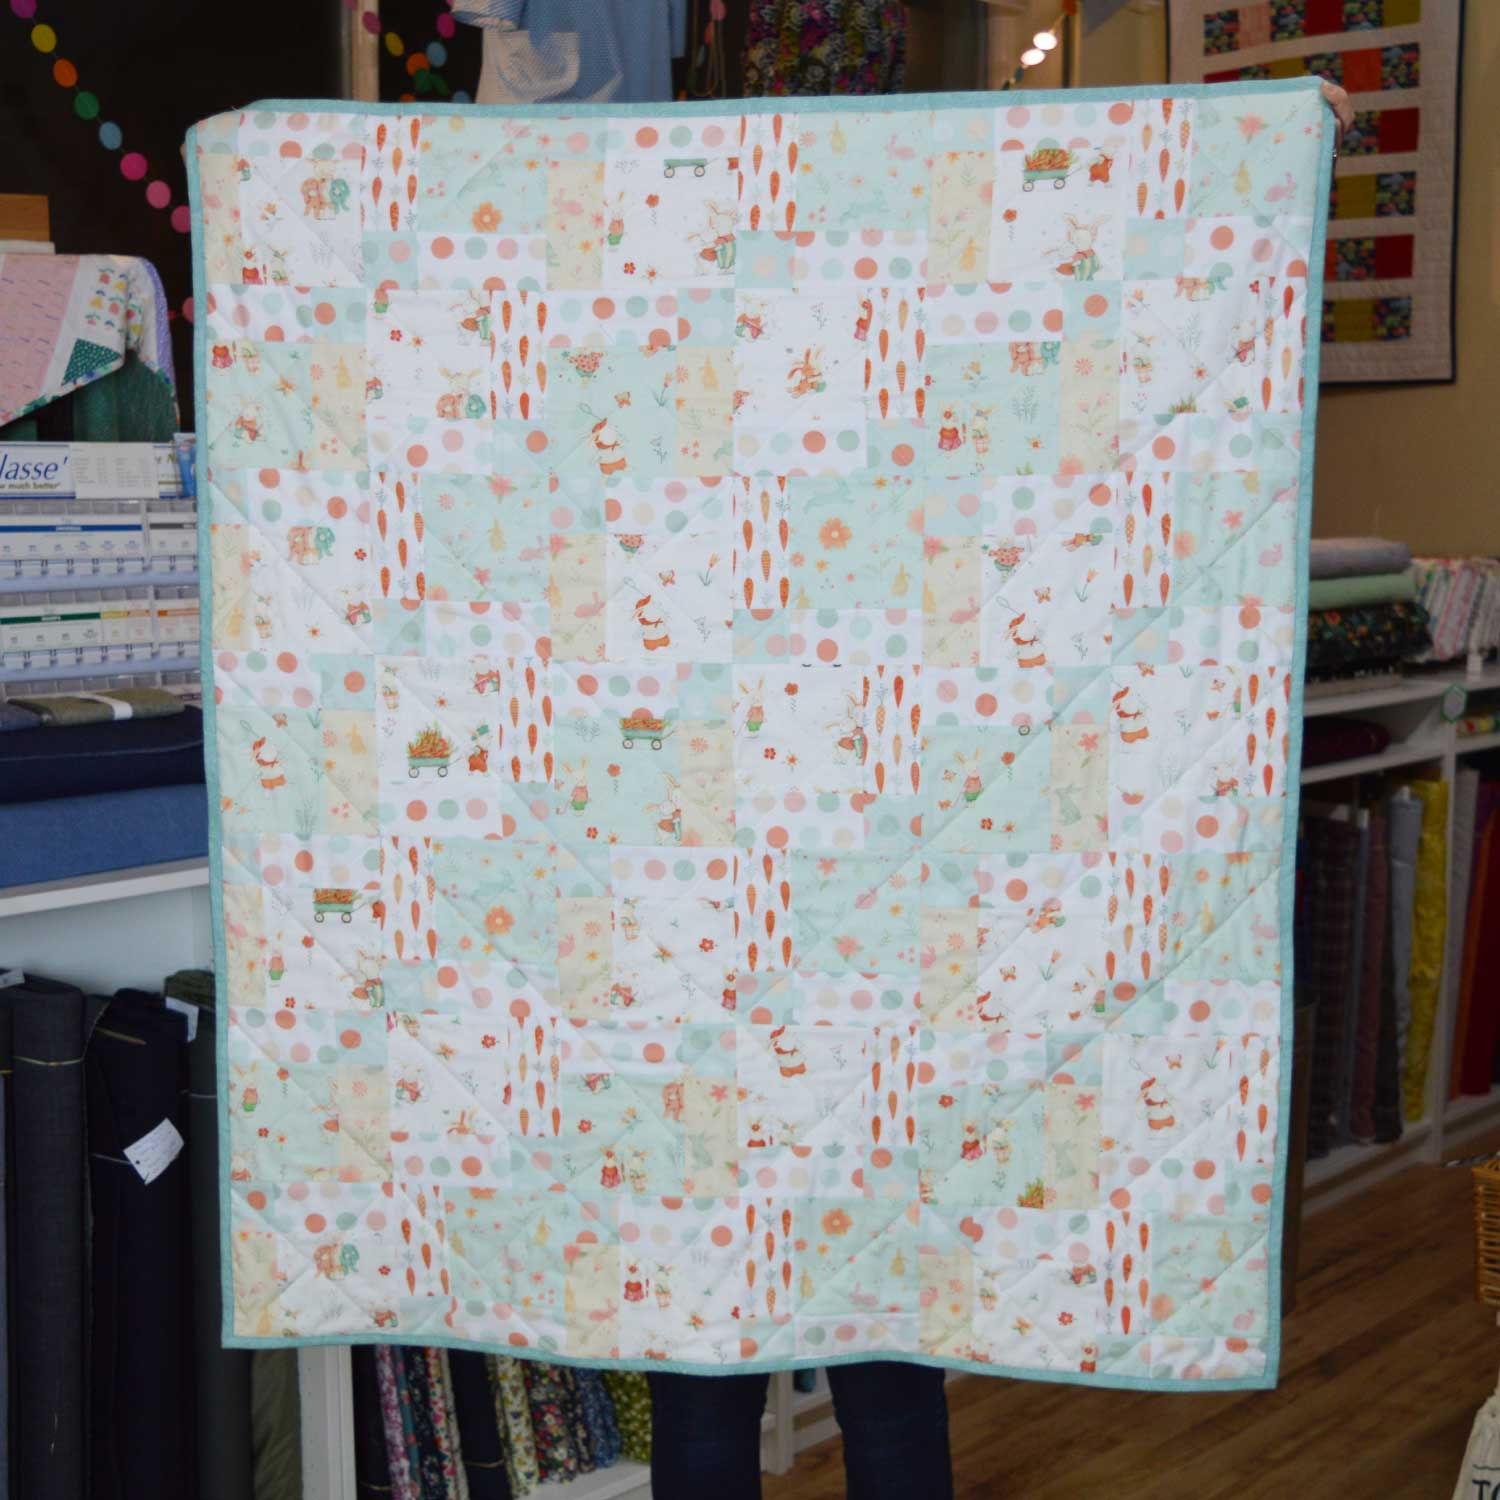 Sewn at Holm Sown: Customer Nine Patch Quilt - Bunny Tales | Holm Sown